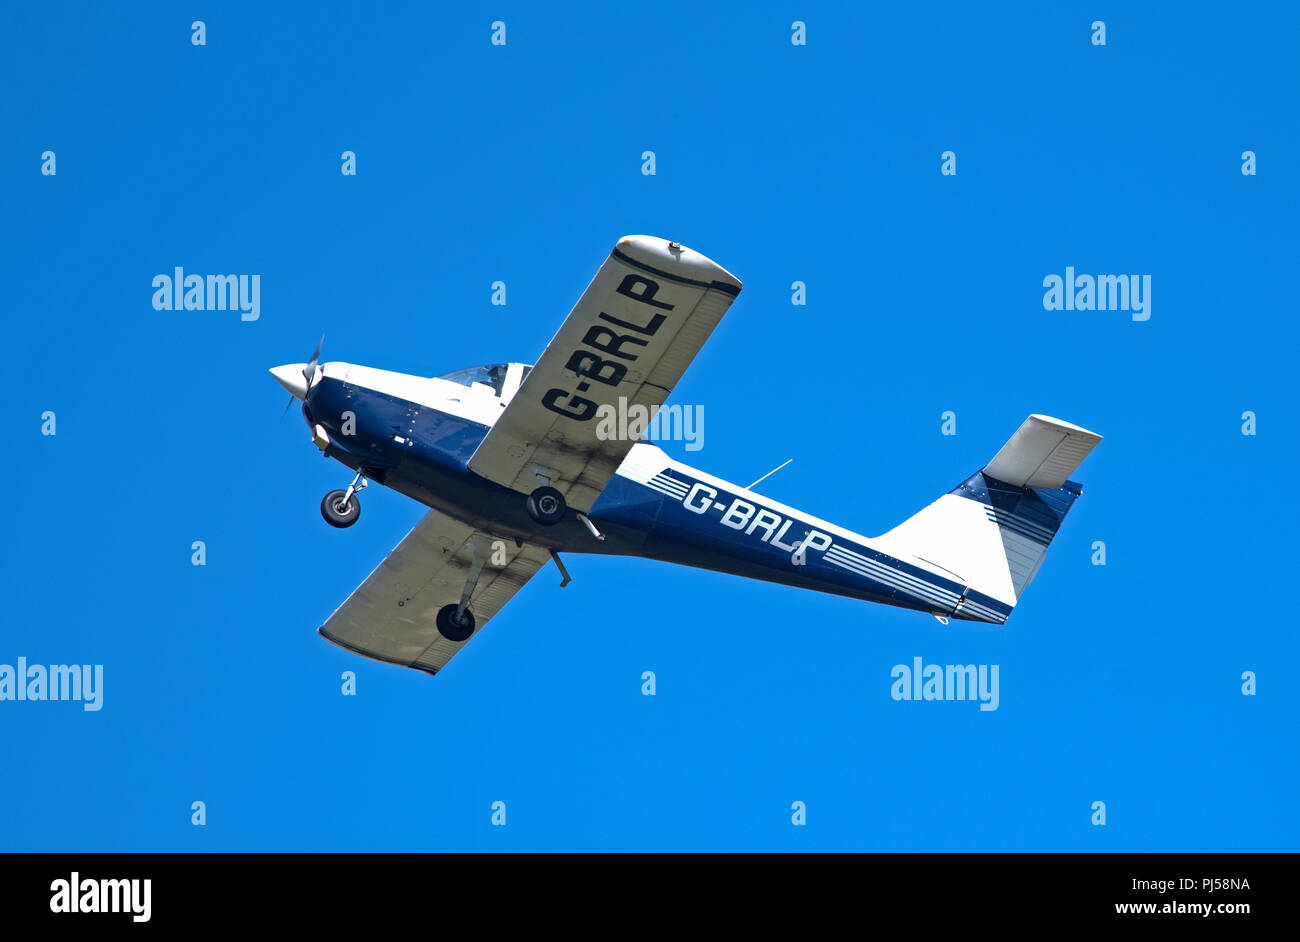 A tomahawk PA38-112 ON A Flying lesson practising touch and go circuits  at Inverness Airport in the North of Scotland. - Stock Image